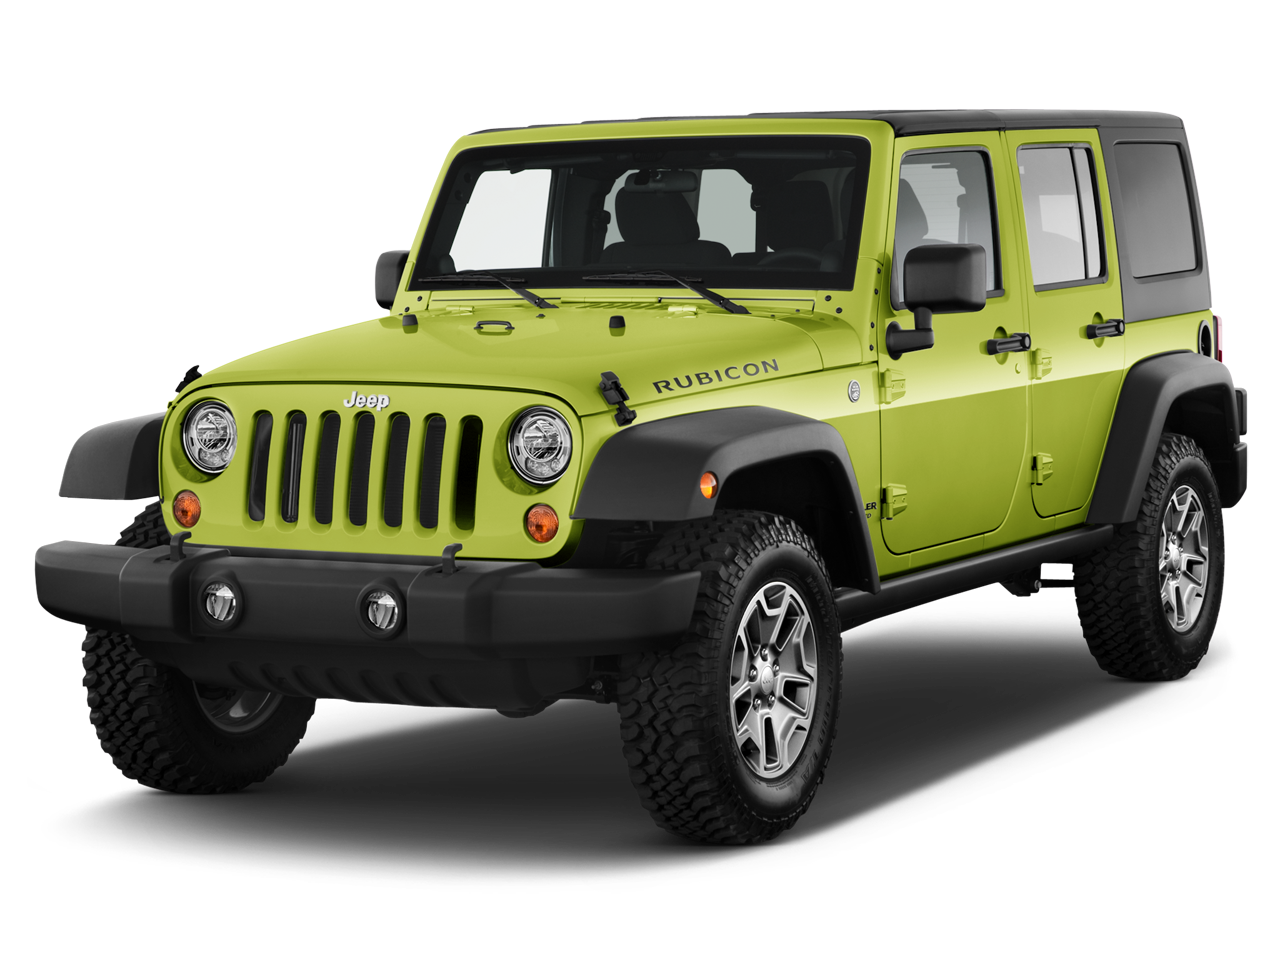 Richardson Chrysler Jeep Dodge Ram 2018 Dodge Reviews